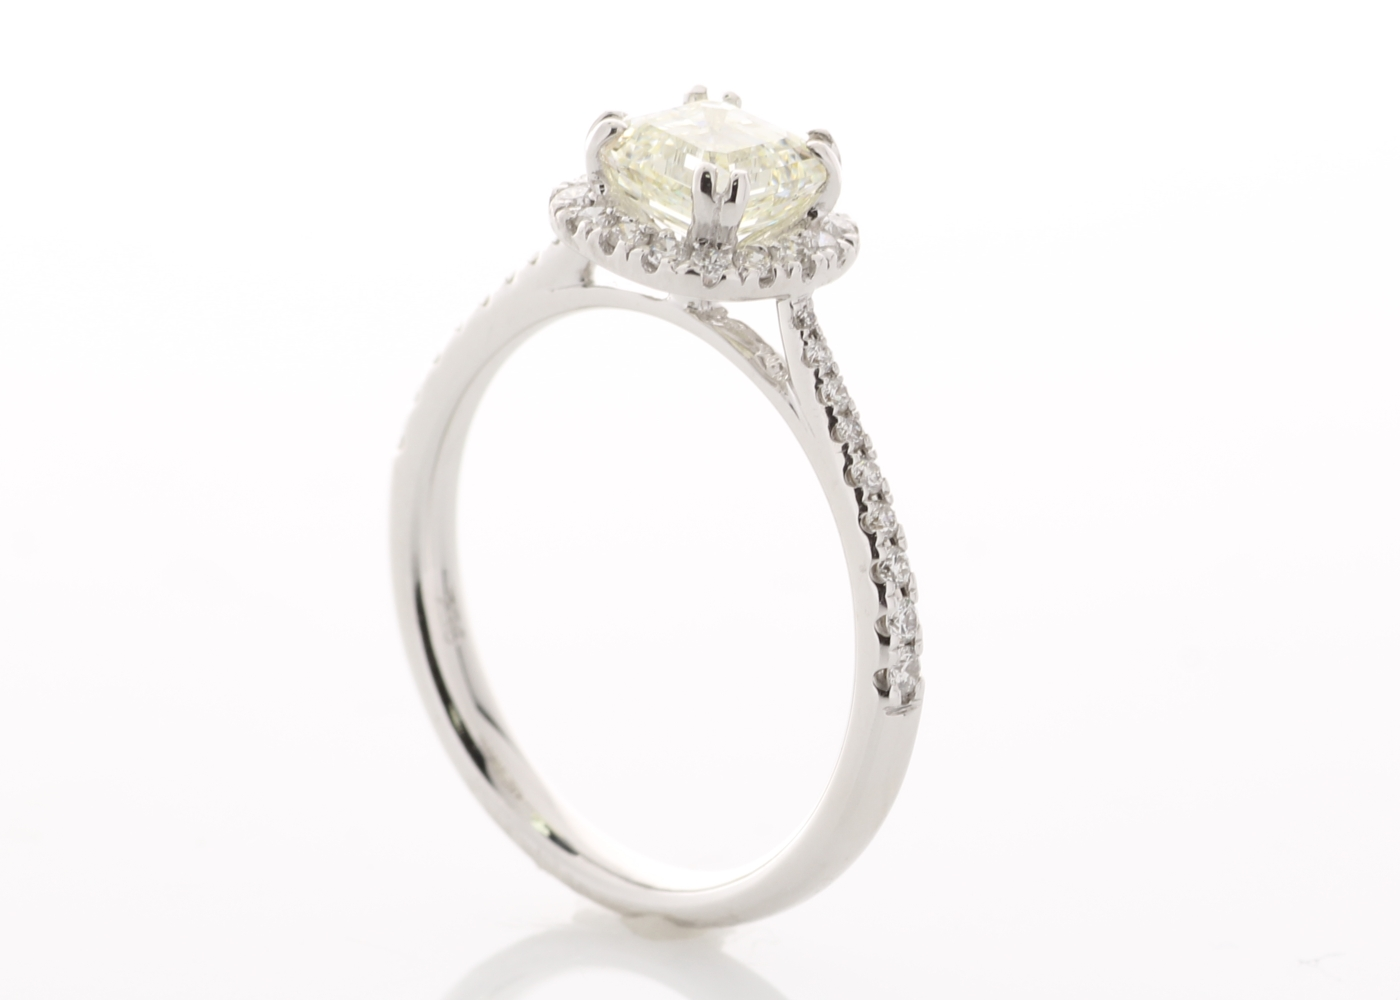 18ct White Gold Single Stone With Halo Setting Ring (1.01) 1.27 Carats - Image 5 of 6